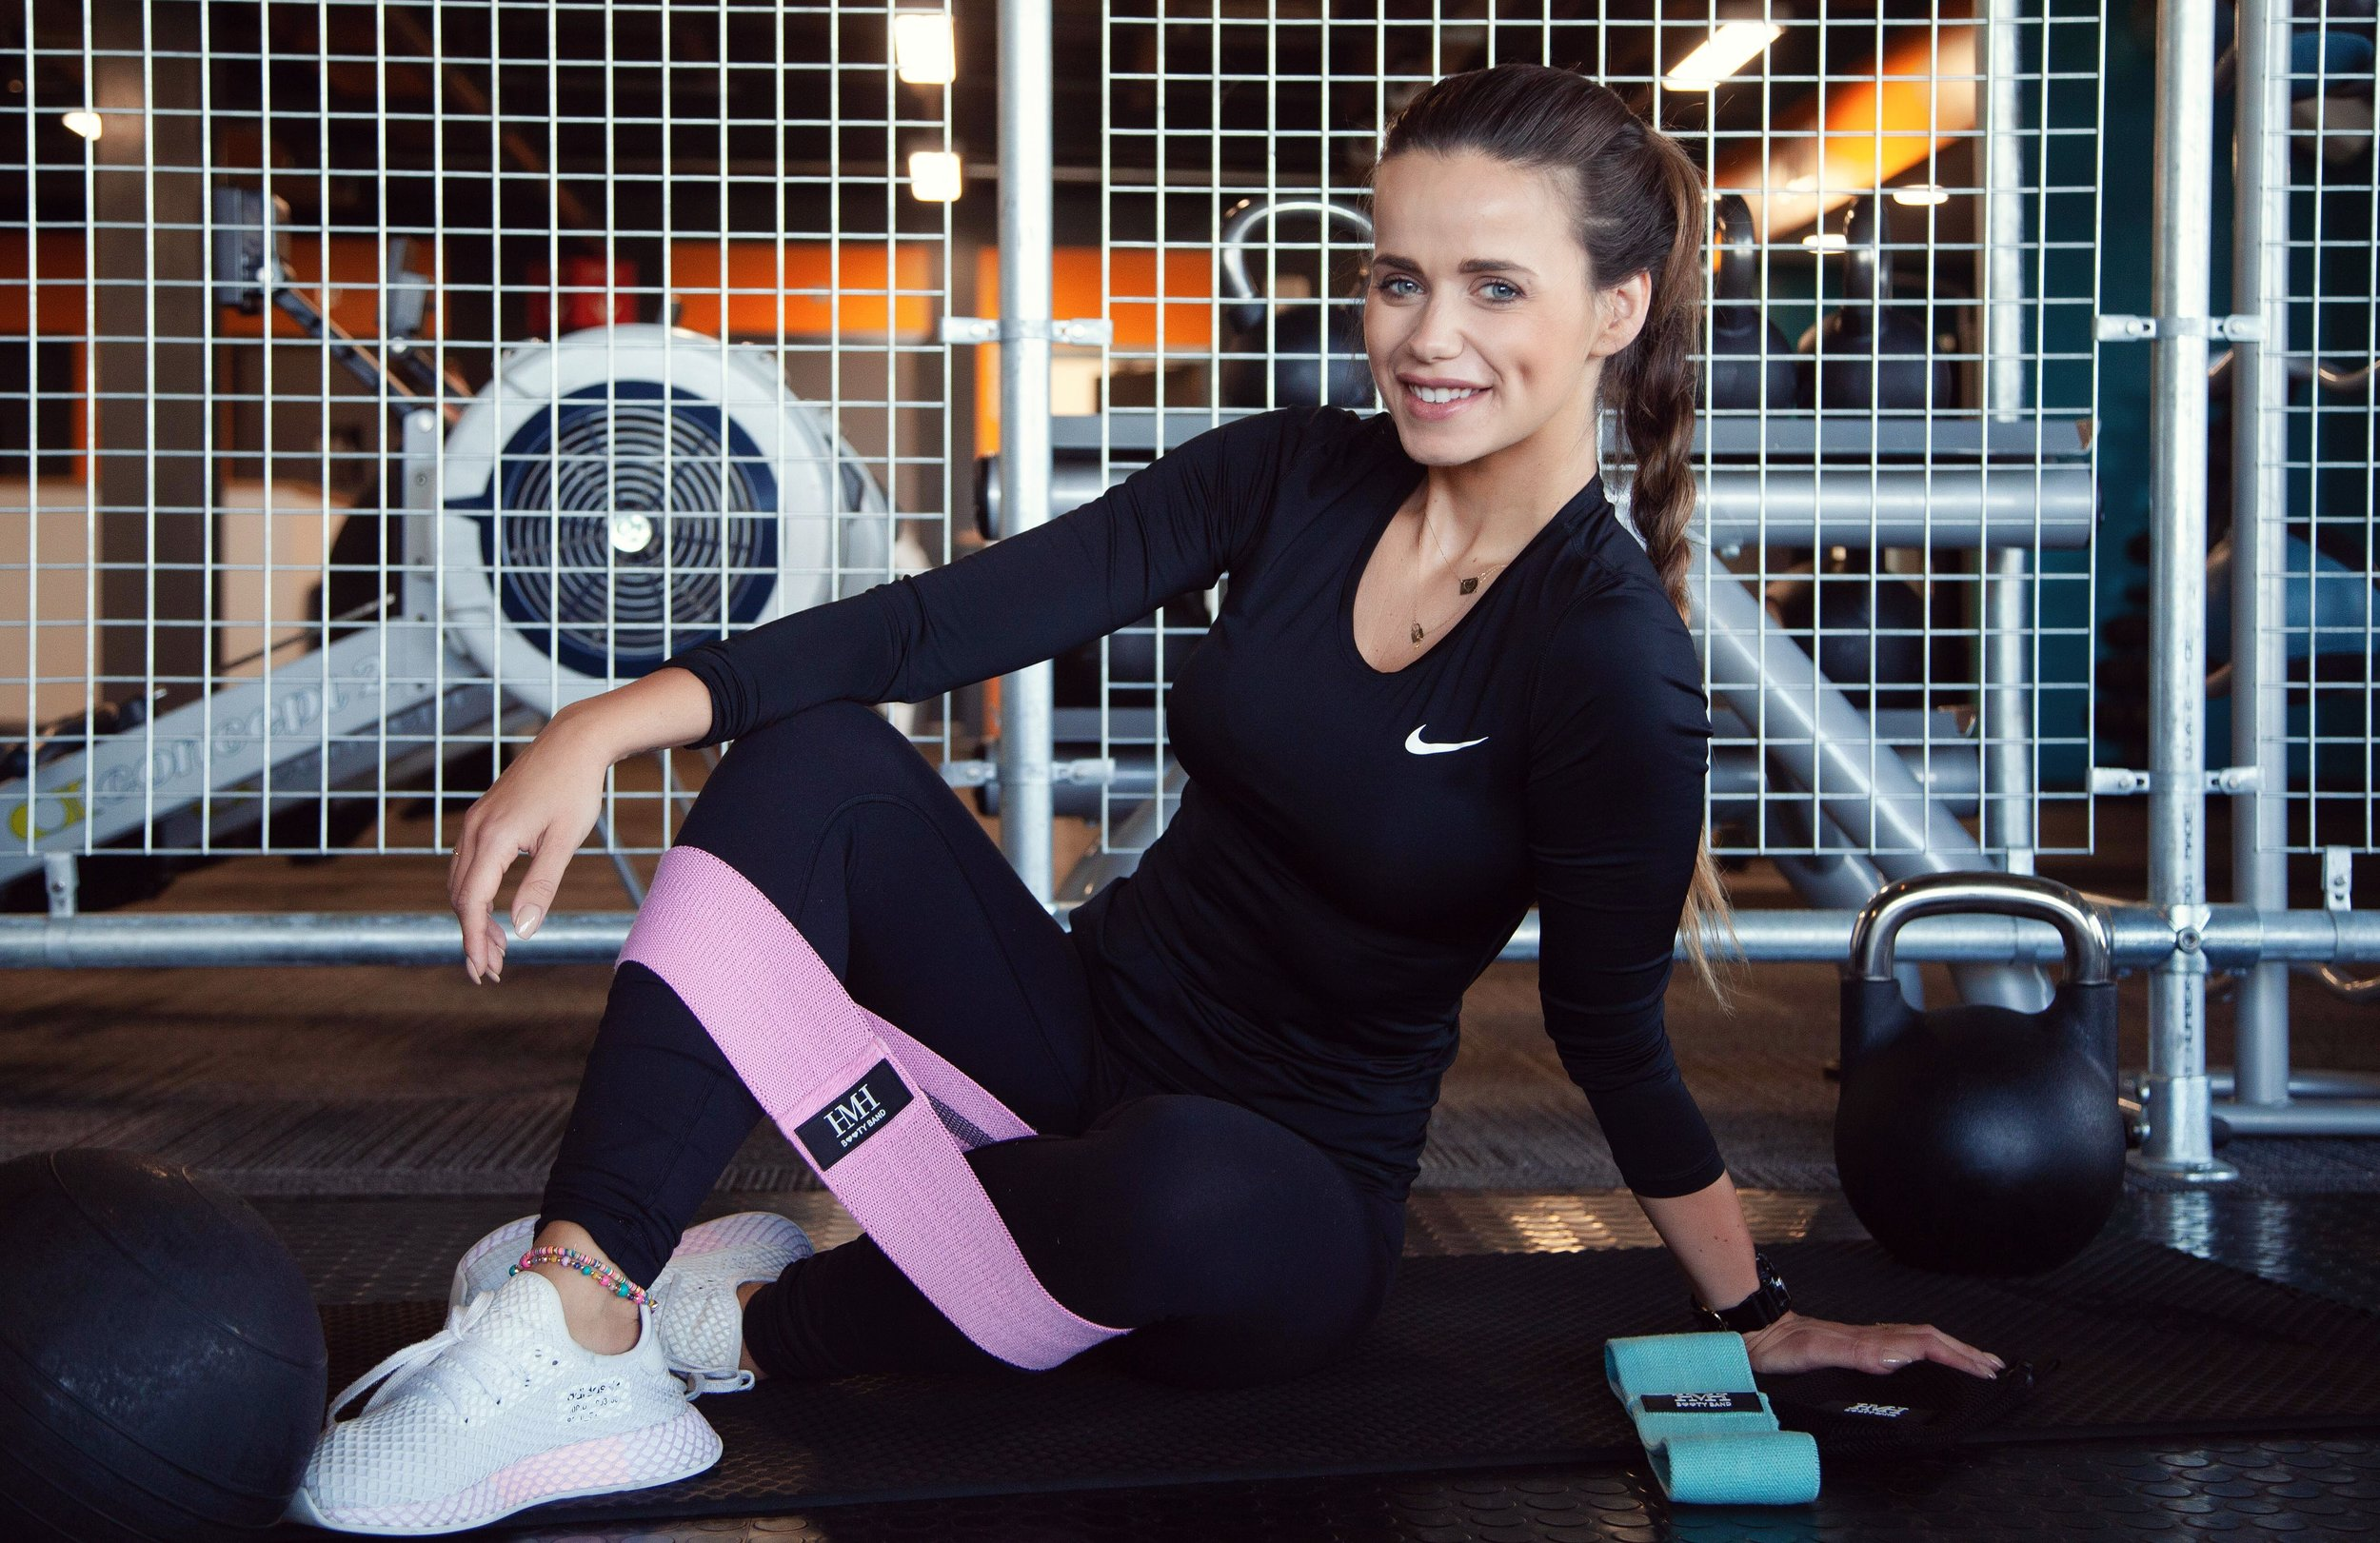 BOOTY BANDS - Designed with passion by one of the UK's best Personal Trainers!We introduce you to two resistance bands, which comes with a carrier bag, workout routine, ebook and diet plan to help you get the best fitness and health results ever!